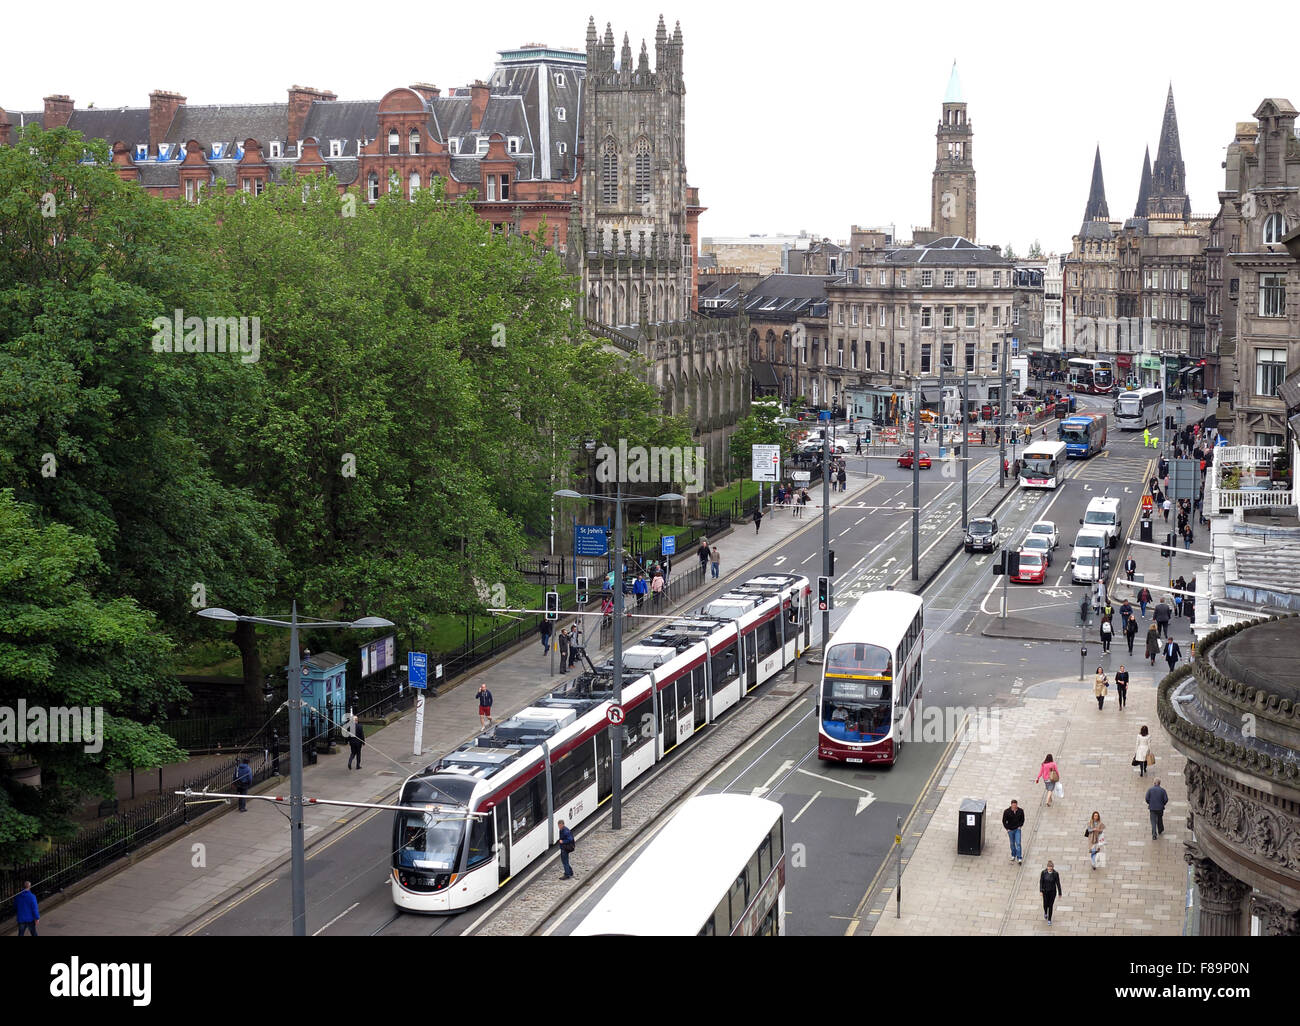 West End of Princes St with trams/buses, summer 2015,Edinburgh,Scotland,UK Stock Photo